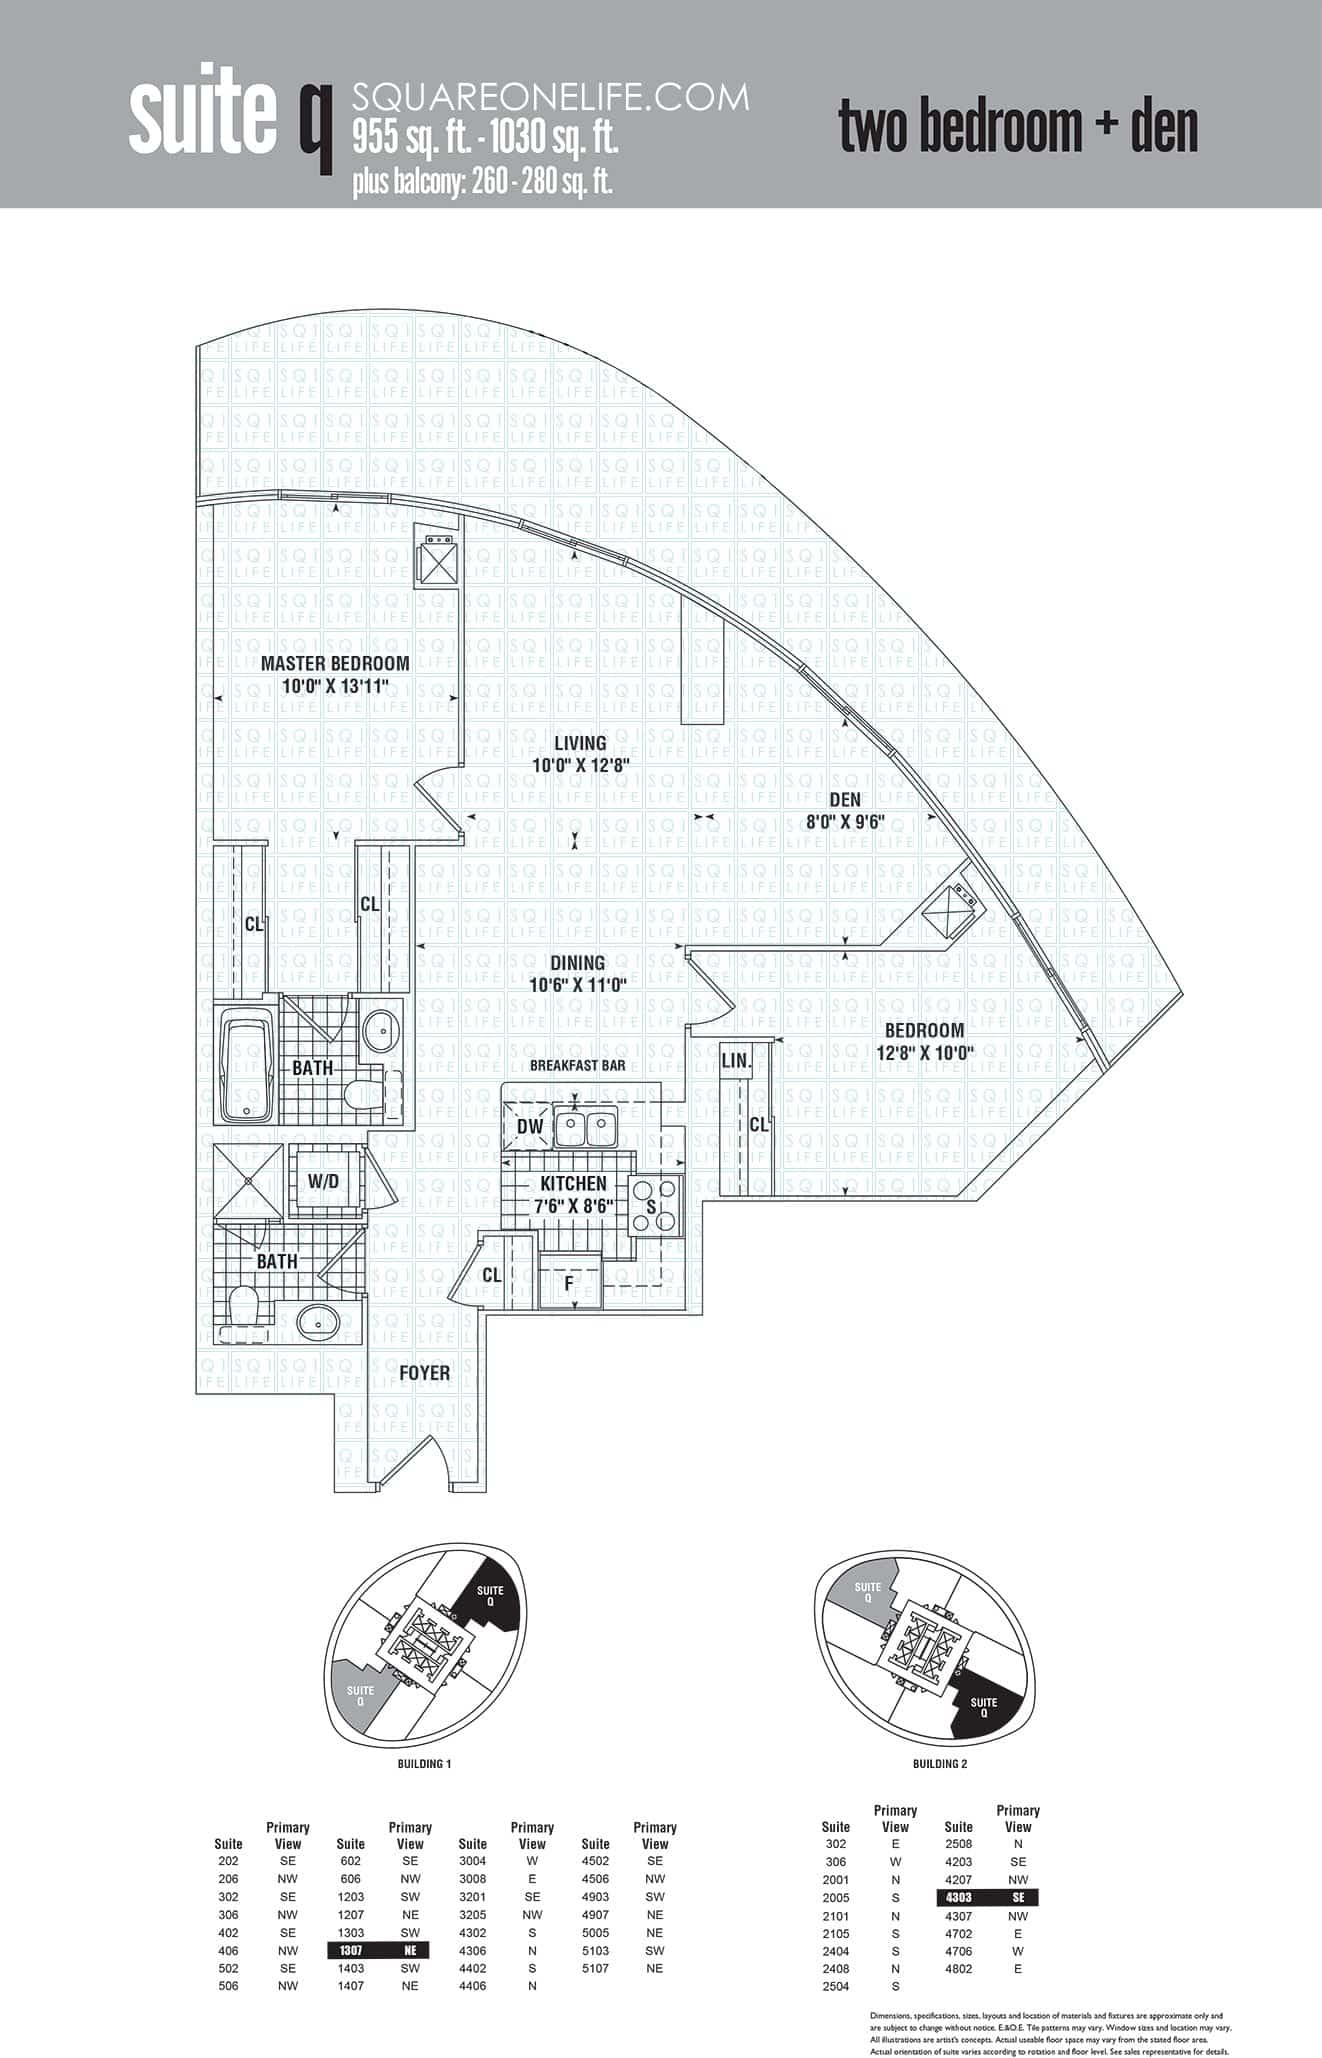 50-Absolute-60-Absolute-Condos-Floorplan-Suite-Q-2-Bed-1-Den-2-Bath marilyn monroe condos Marilyn Monroe Condos 50 Absolute 60 Absolute Condos Floorplan Suite Q 2 Bed 1 Den 2 Bath